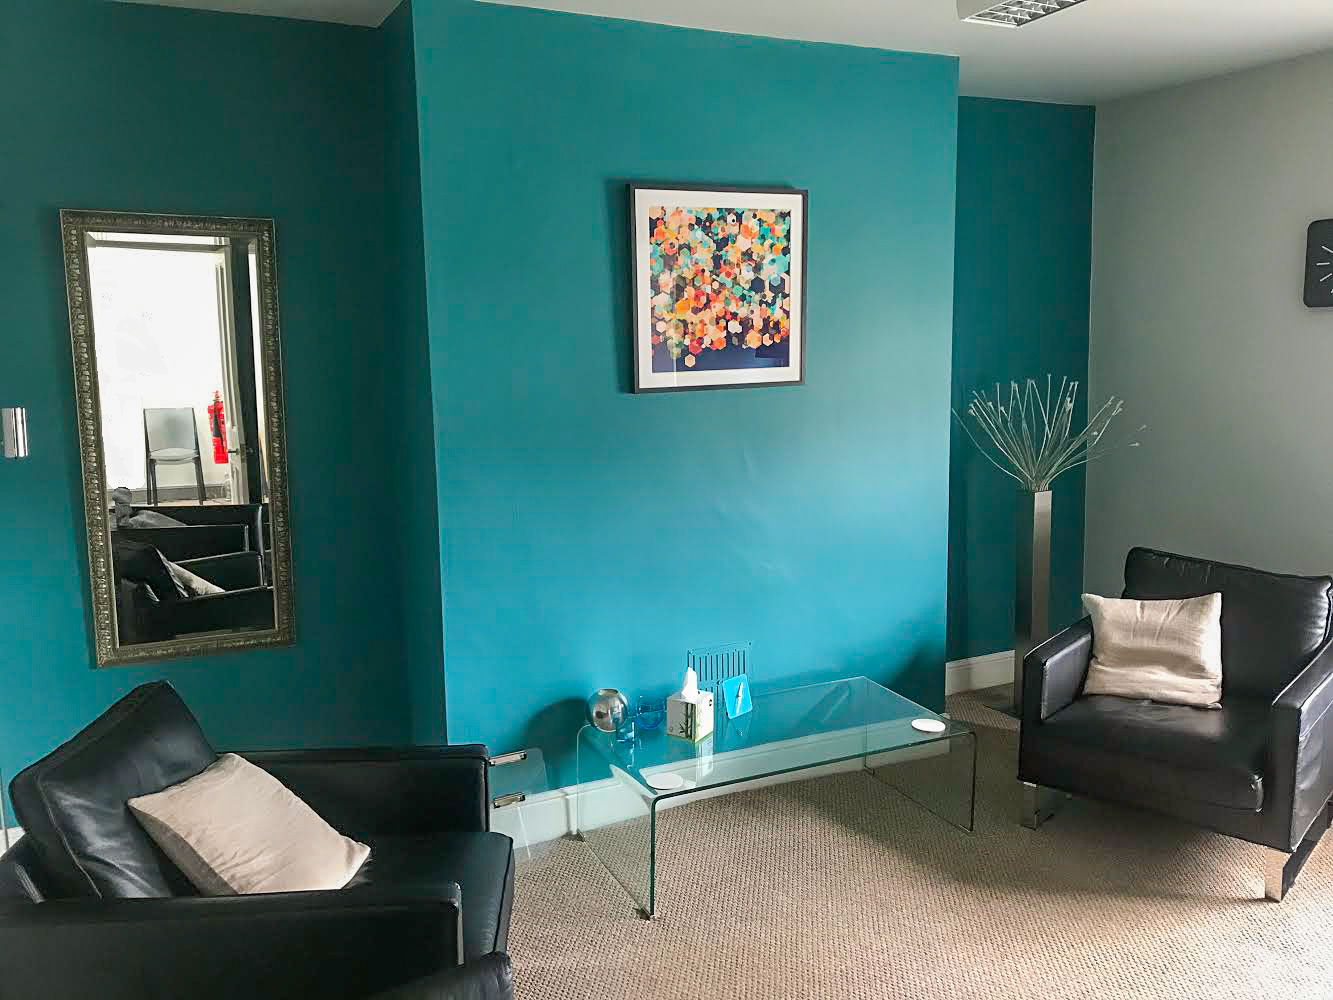 hire a therapy room in harrogate